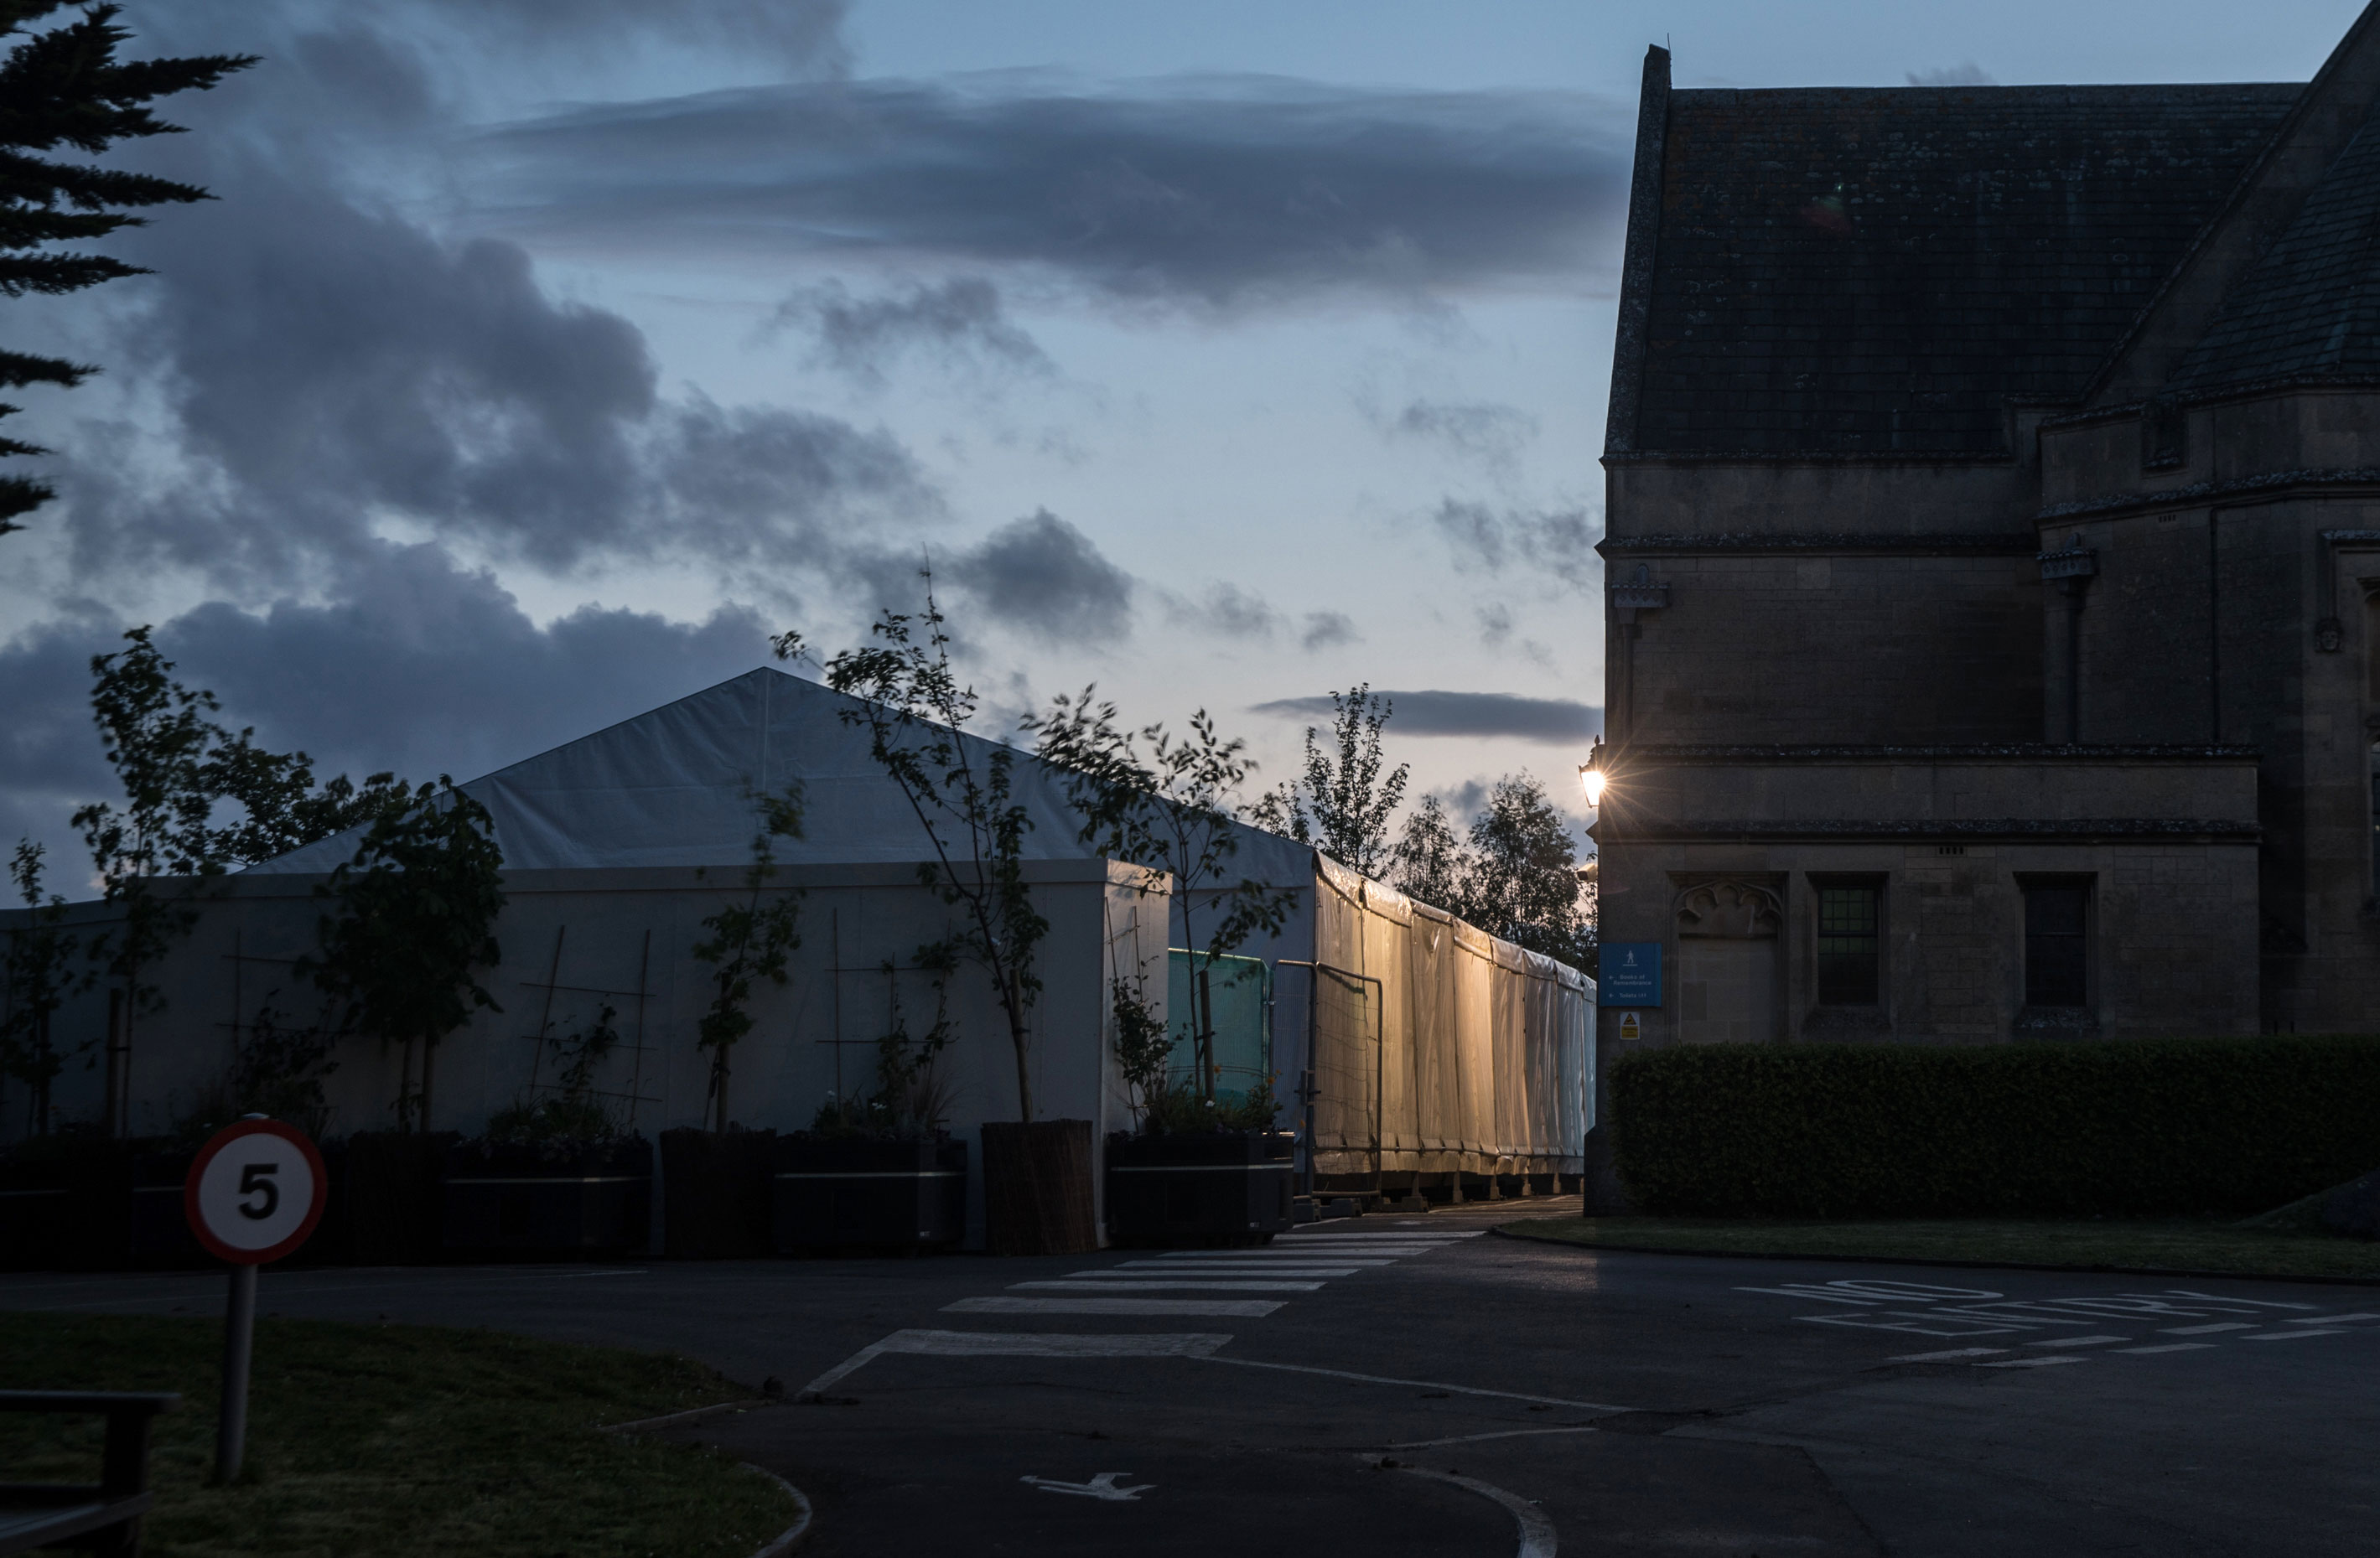 Night falls on a temporary morgue that has been constructed on the grounds of Haycombe Cemetery to accommodate victims of COVID-19 on May 1 in Bath, United Kingdom.